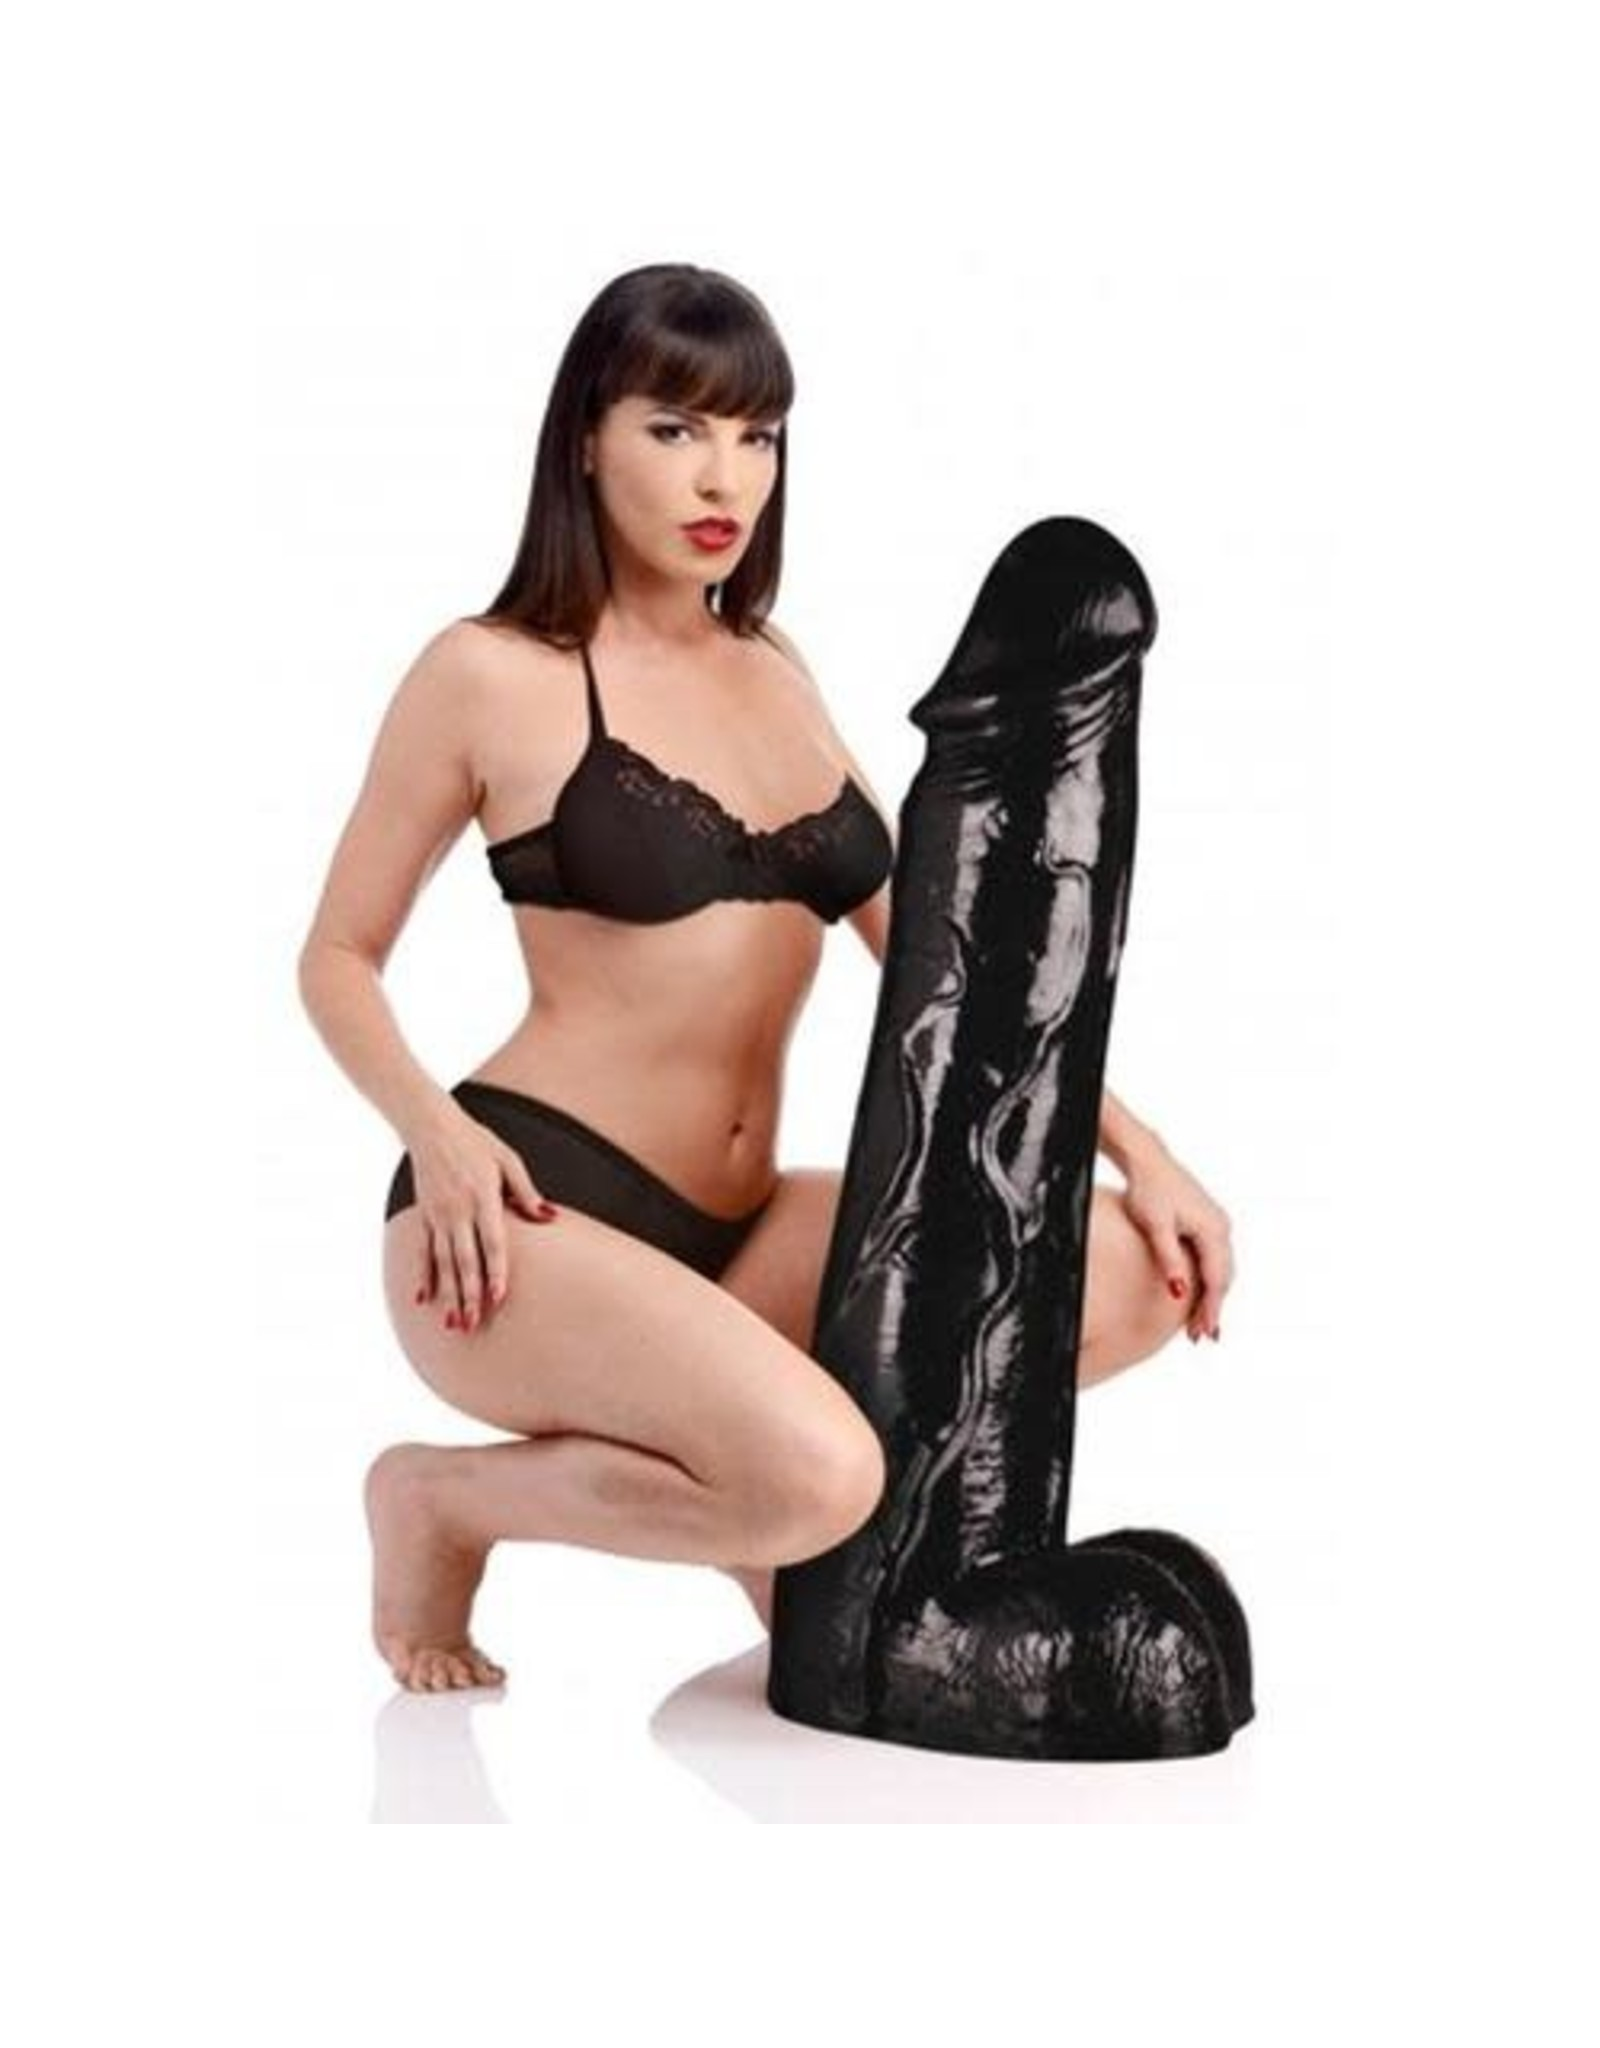 MASTER SERIES MOBY THE HUGE 3 FOOT TALL SUPER DILDO, BLACK